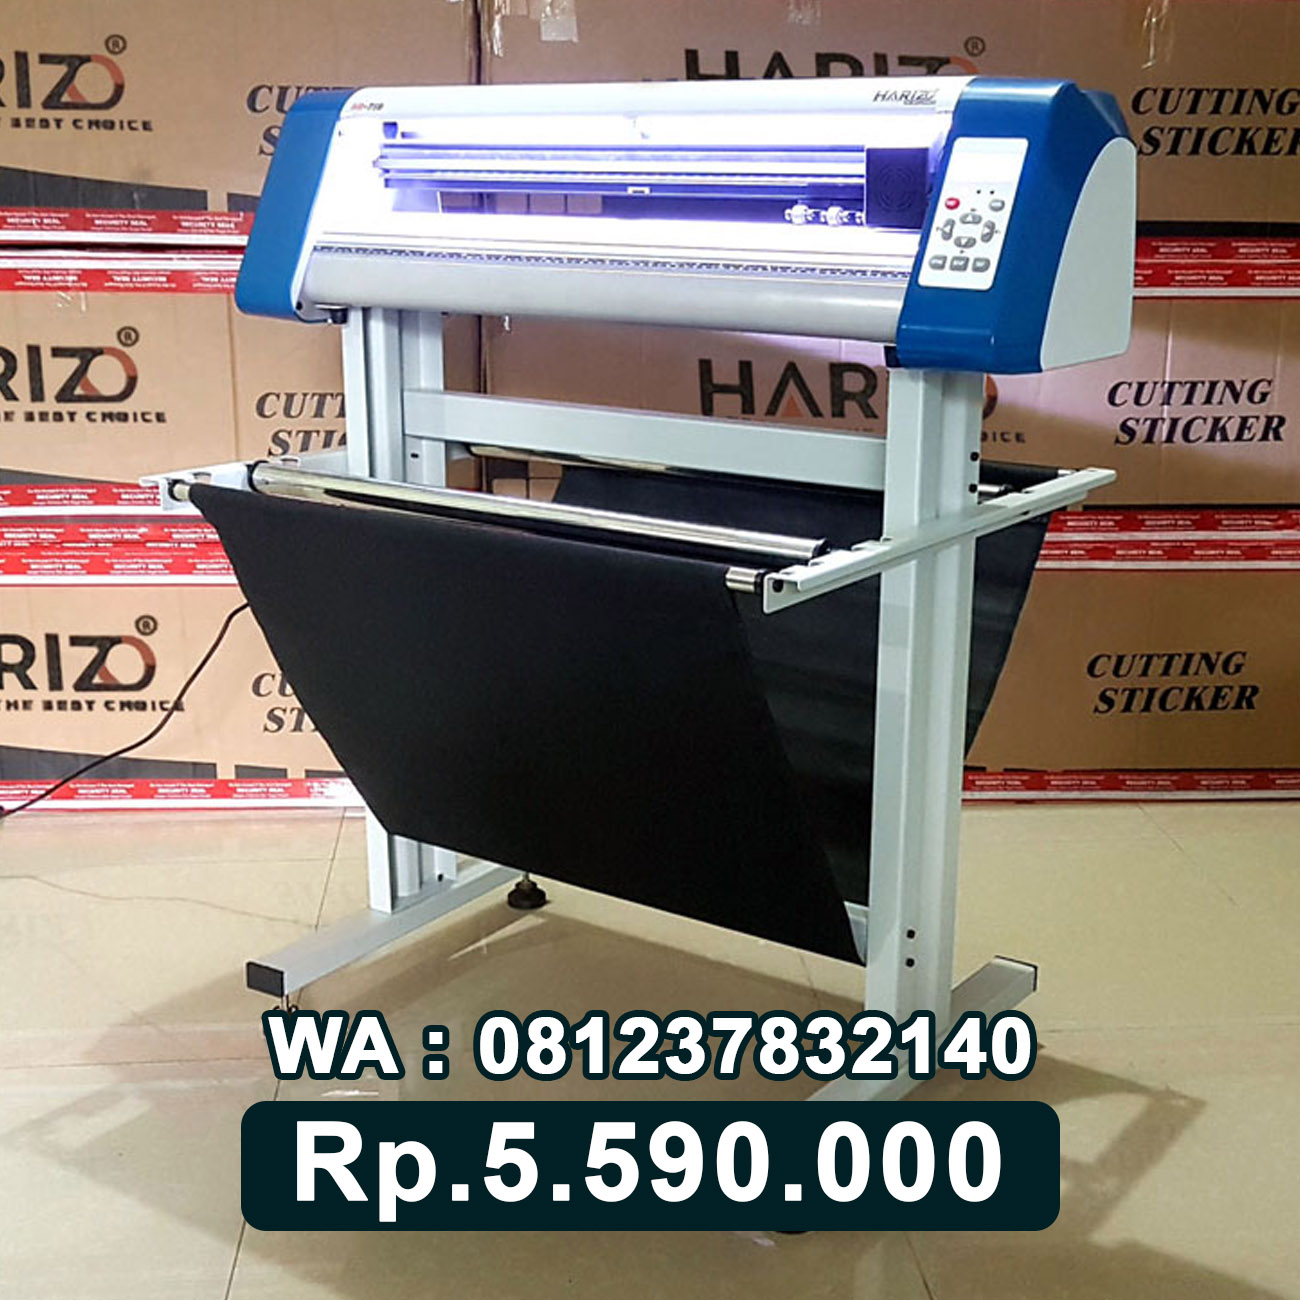 JUAL MESIN CUTTING STICKER HARIZO 720 Tabalong